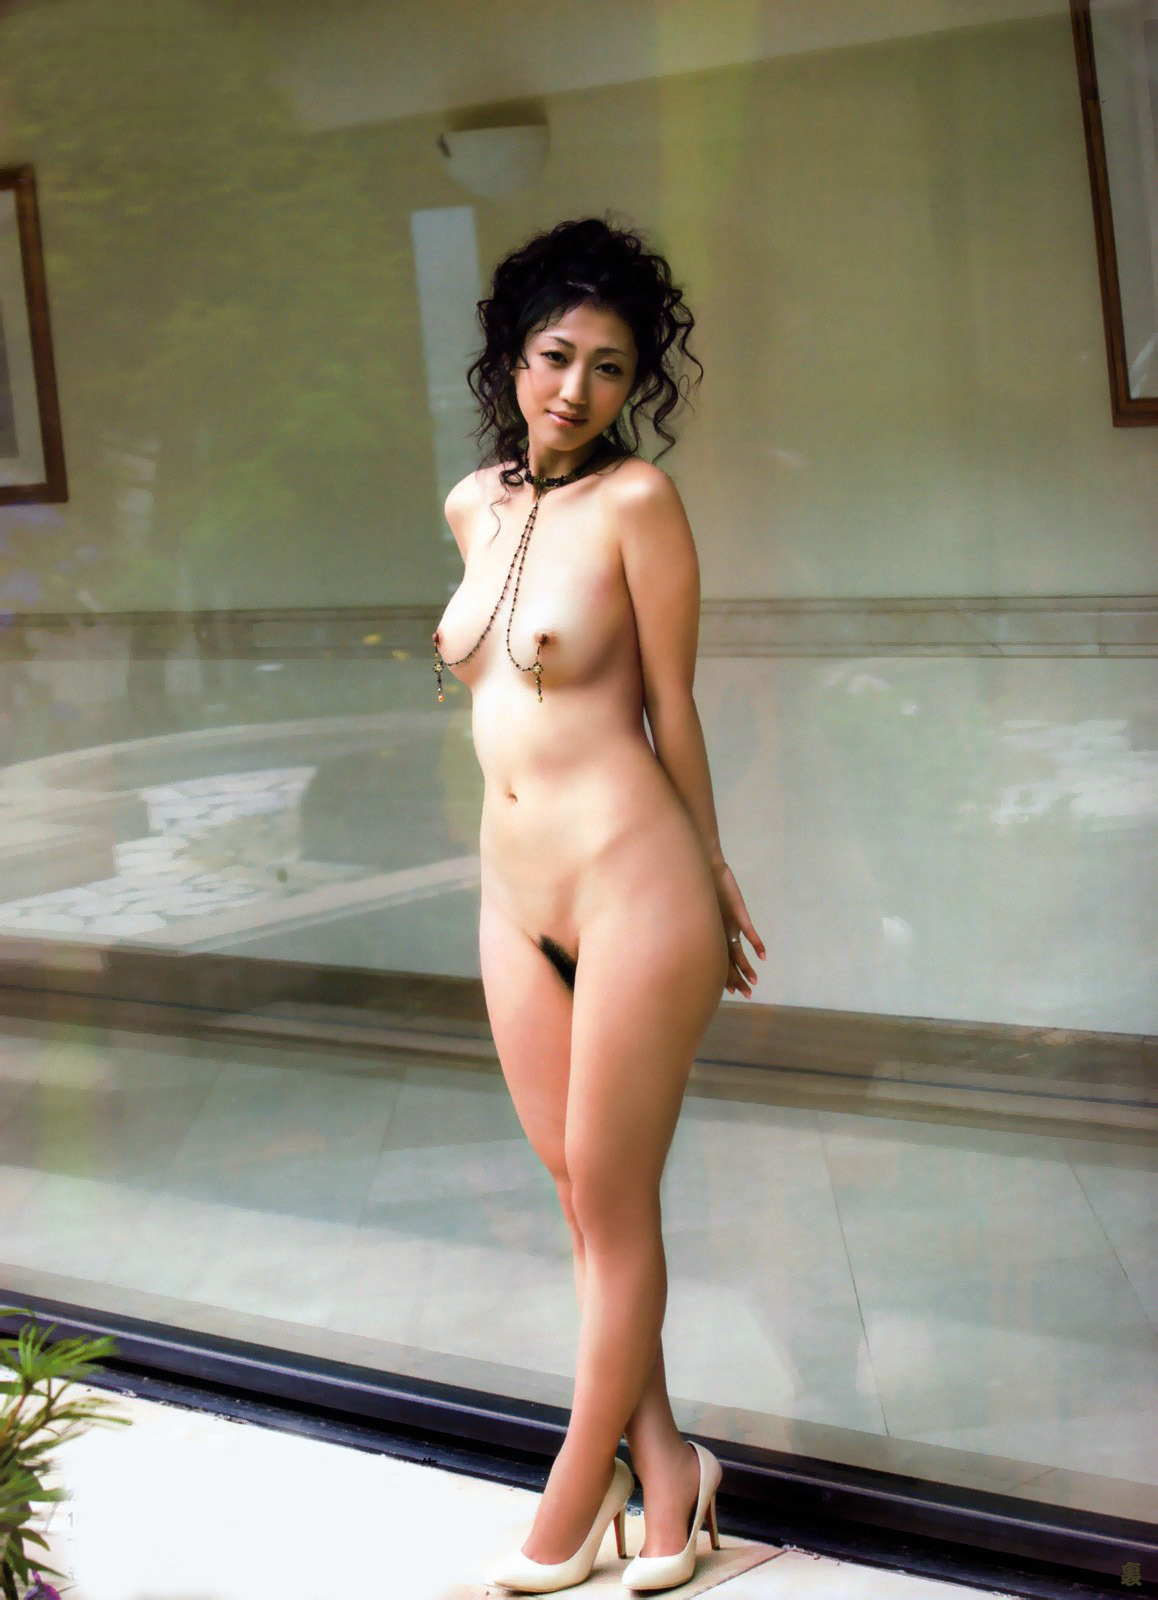 Asian model with nipple accessories ★ Let's talk: My Discussion Forum whiterabbit0117:  Urak scan Dan Mitsu 699344